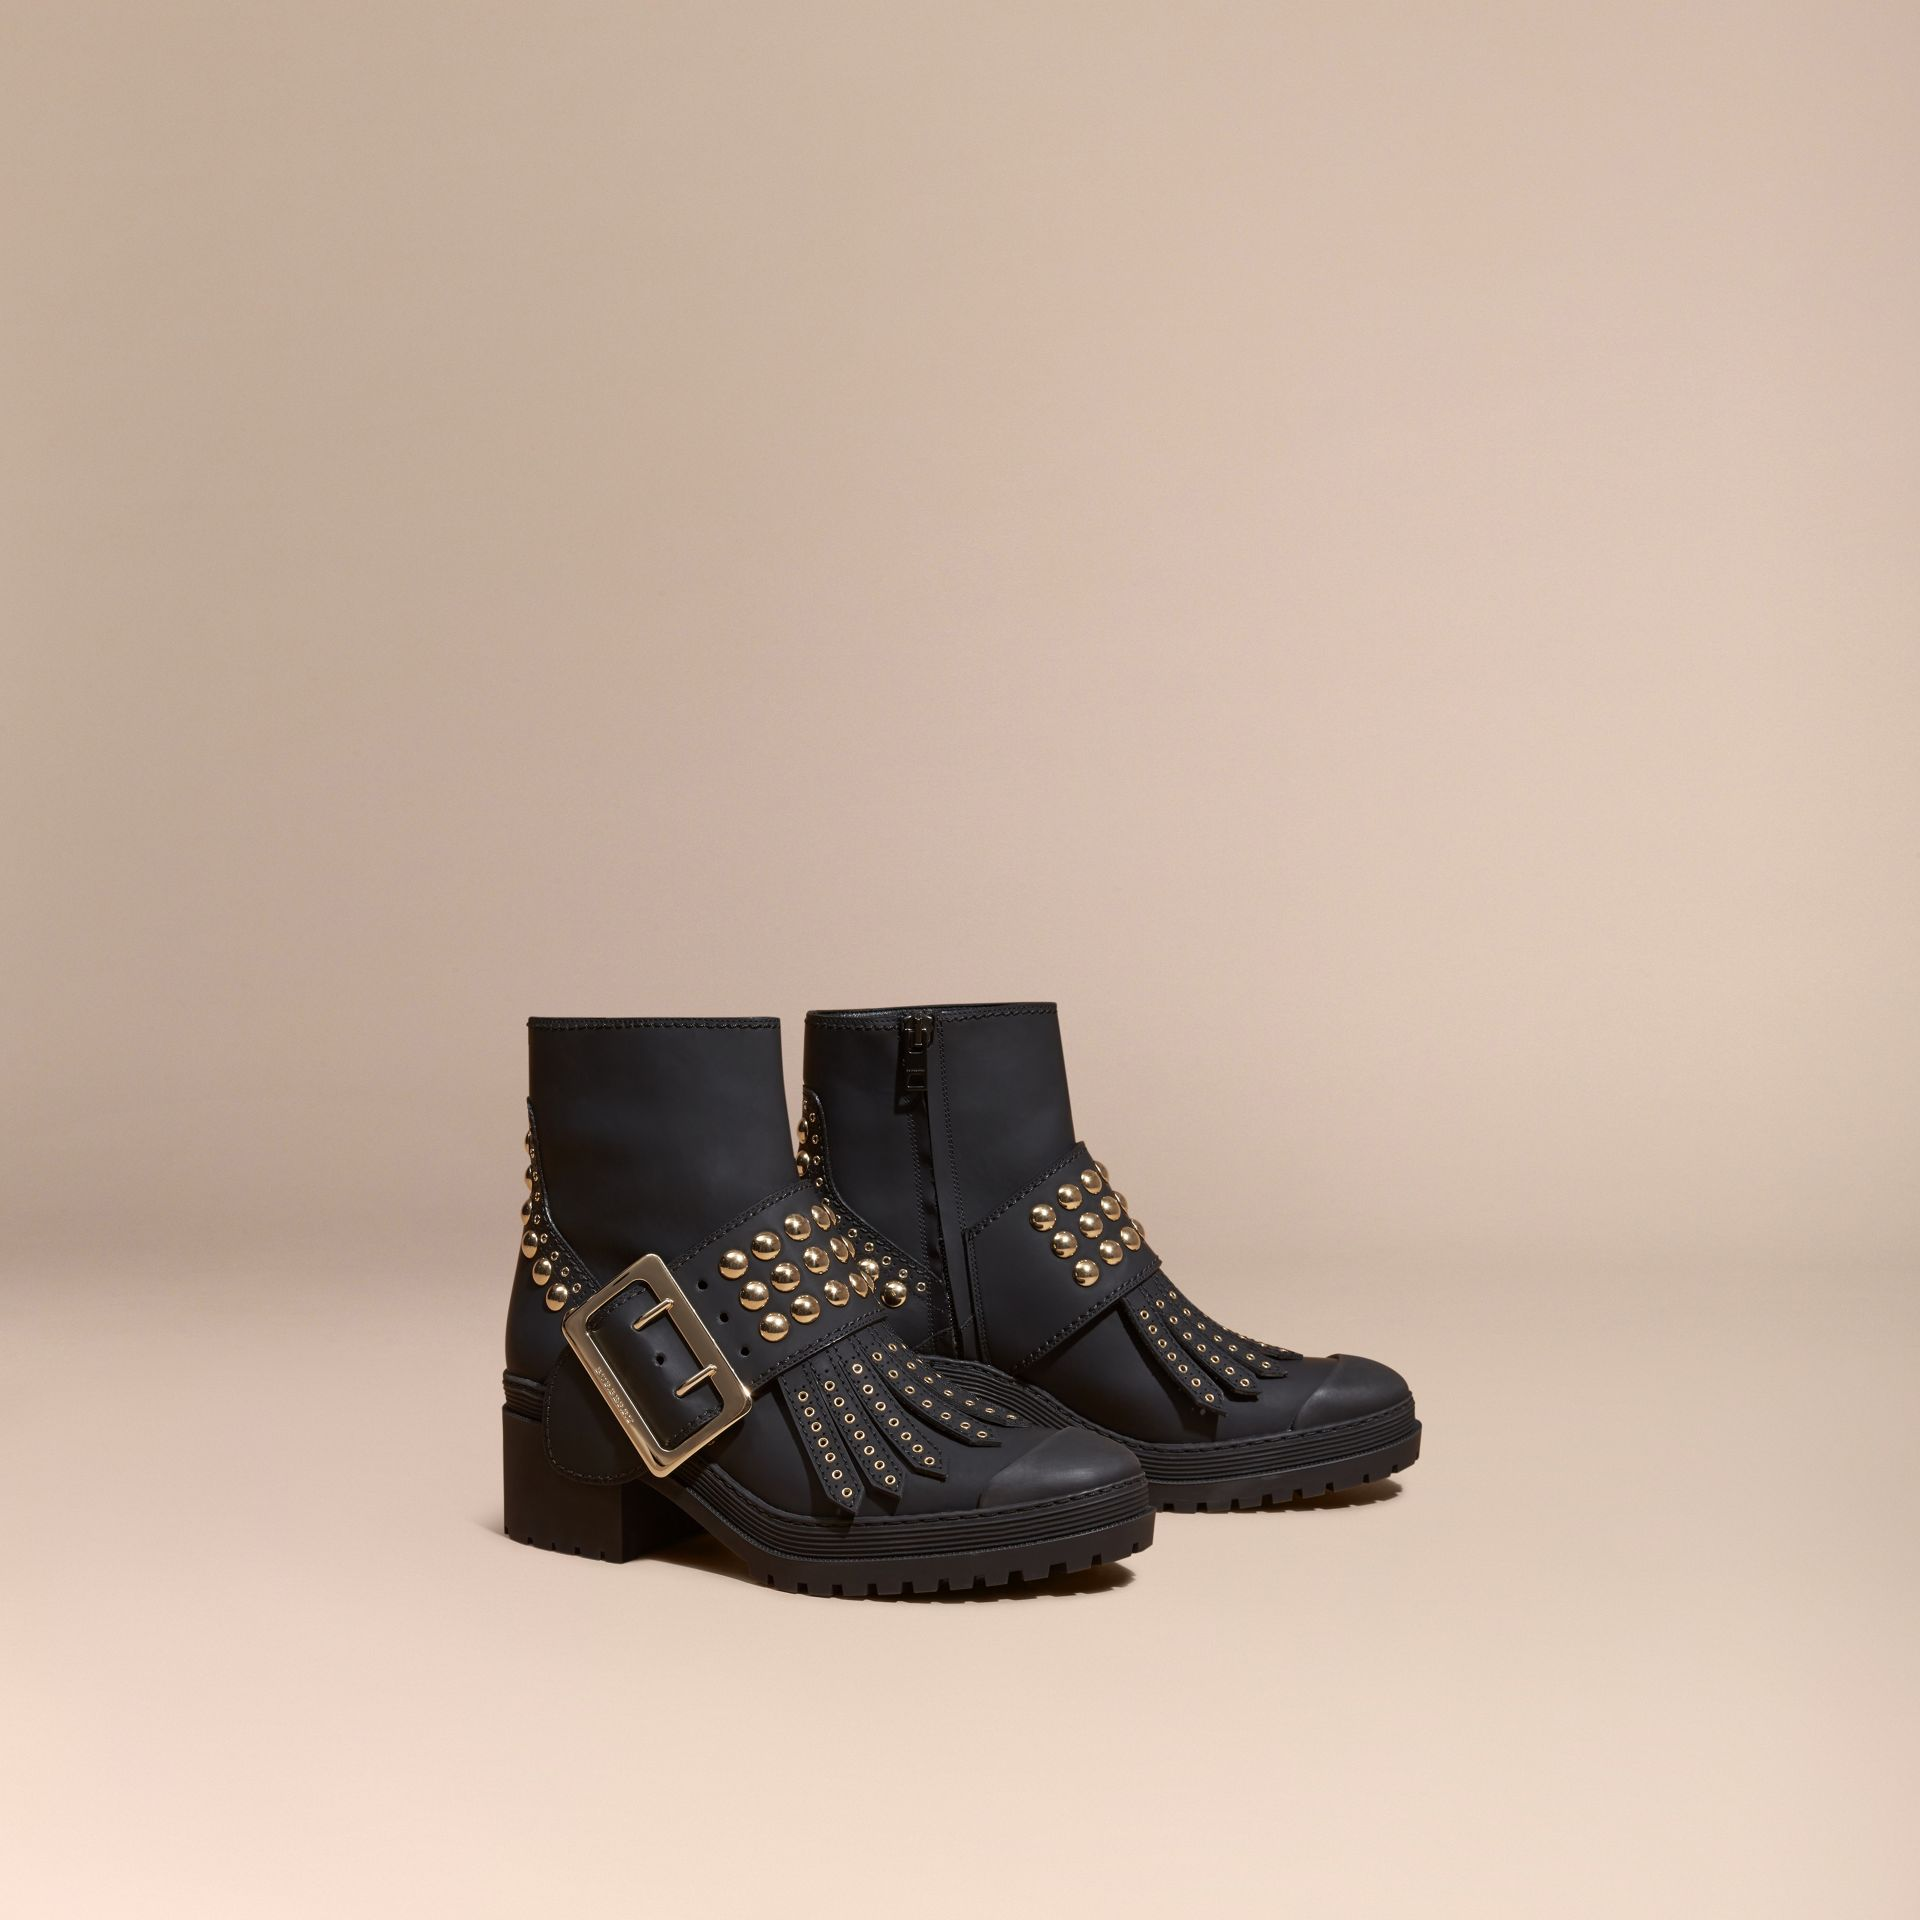 Noir Bottines The Buckle en cuir caoutchouté - photo de la galerie 1